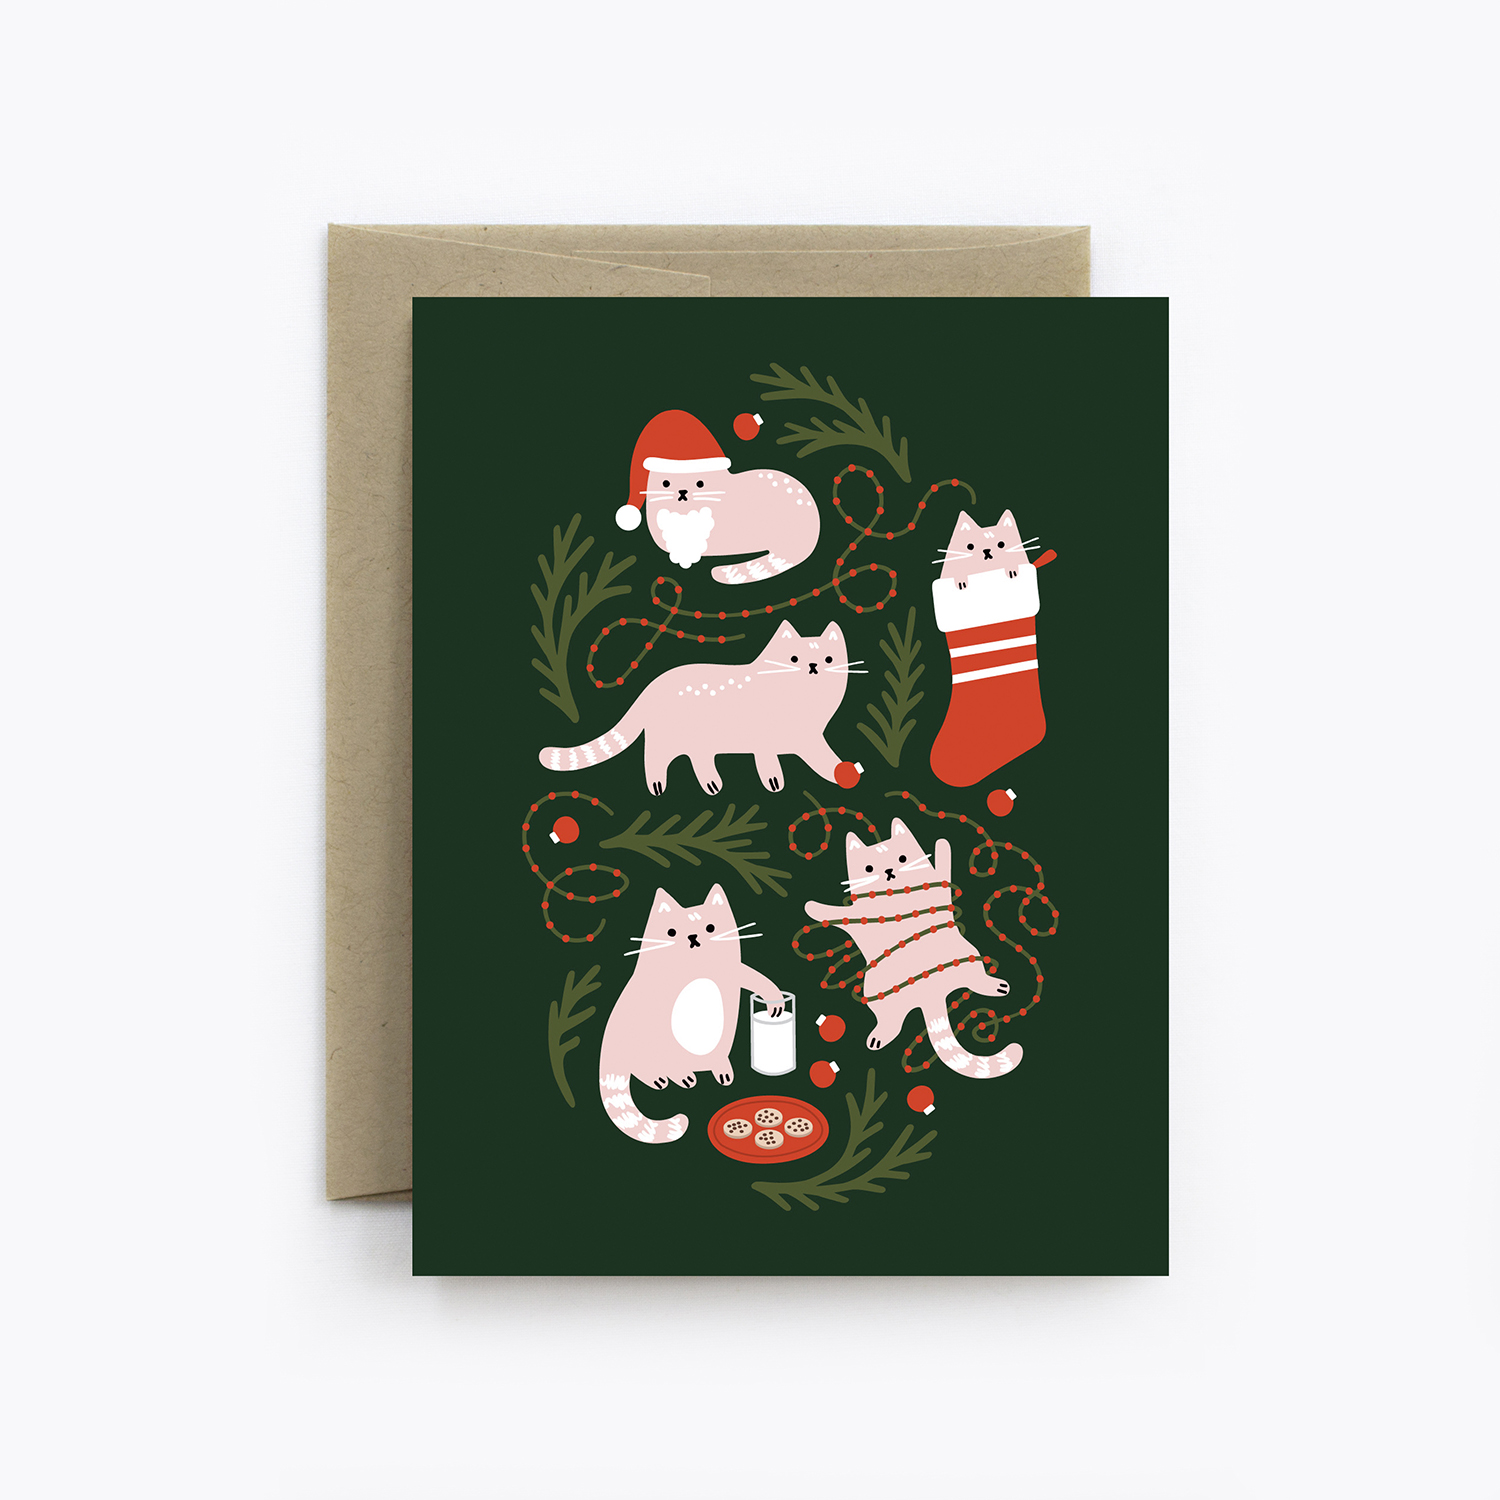 Detroit Card Co  is a paper goods company making colorful, modern items to brighten your day. They will have holiday cards and wrapping paper, as well as heavily discounted greeting cards, gift wrap, notebooks, magnets and rubber stamps.